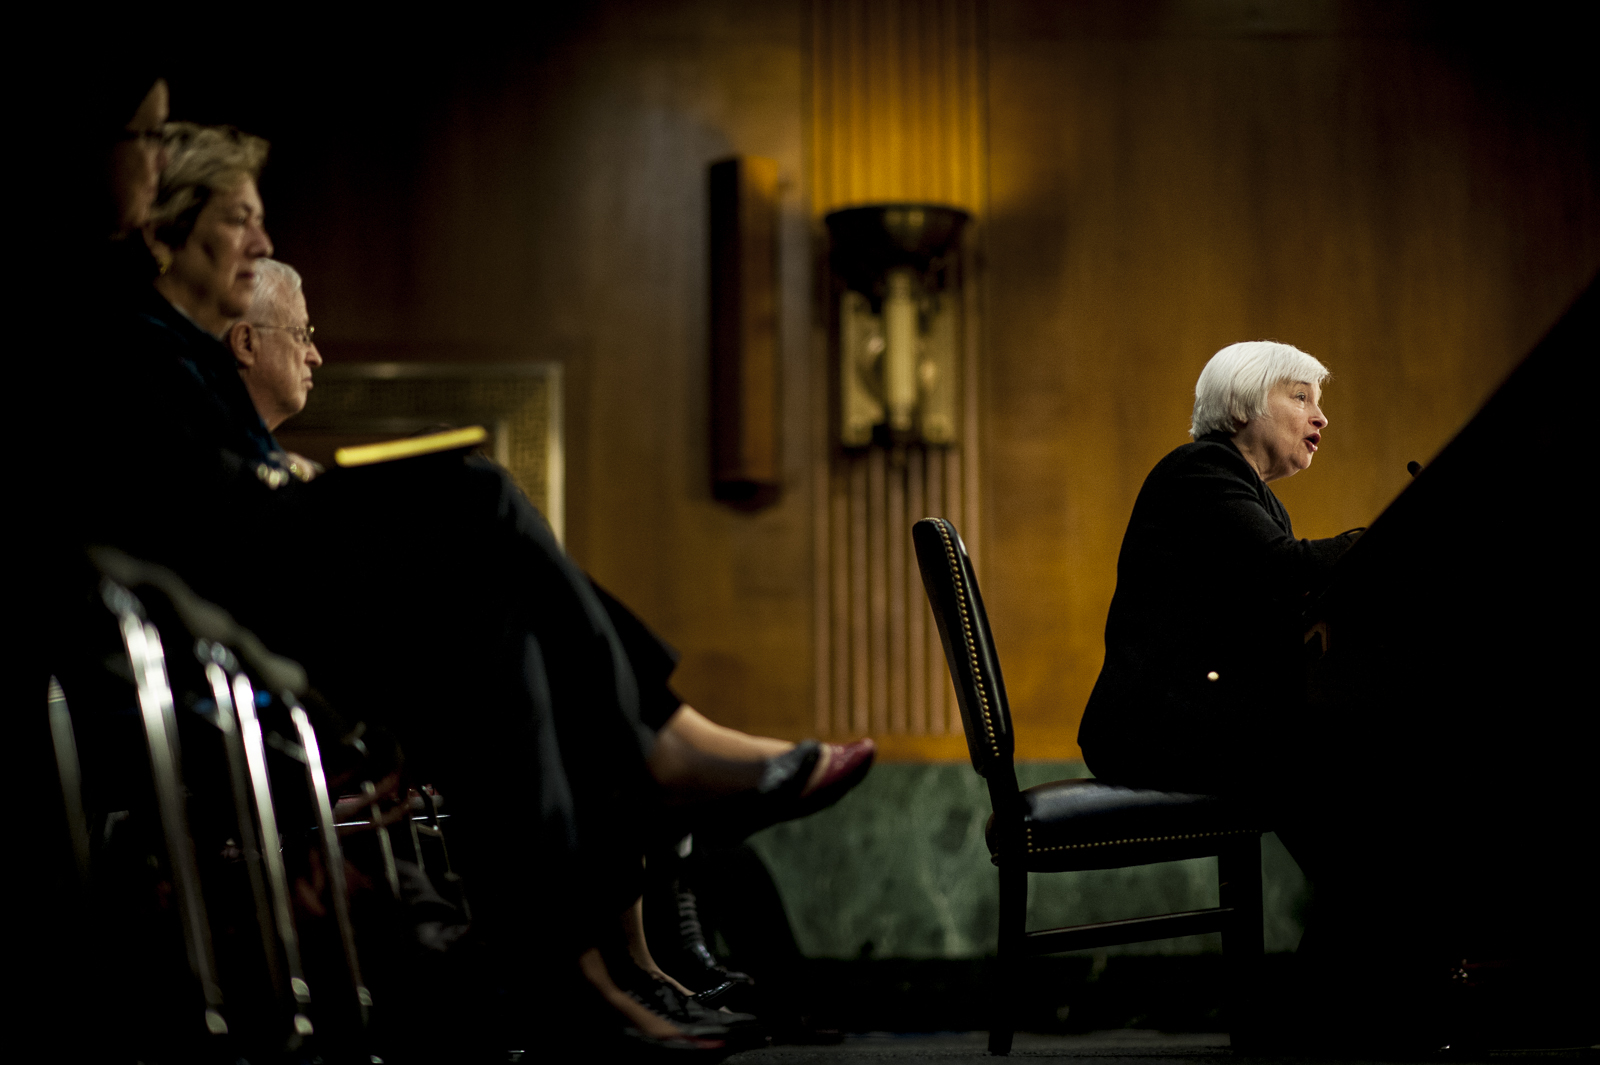 Janet Yellen, vice chairman of the U.S. Federal Reserve and U.S. President Barack Obama's nominee as chairman of the Federal Reserve, testifies before a Senate Banking Committee confirmation hearing in Washington, D.C., U.S., on Thursday, Nov. 14, 2013. Yellen signaled she will carry on the central bank's unprecedented stimulus until she sees improvement in an economy that's operating well below potential. Pete Marovich/Bloomberg